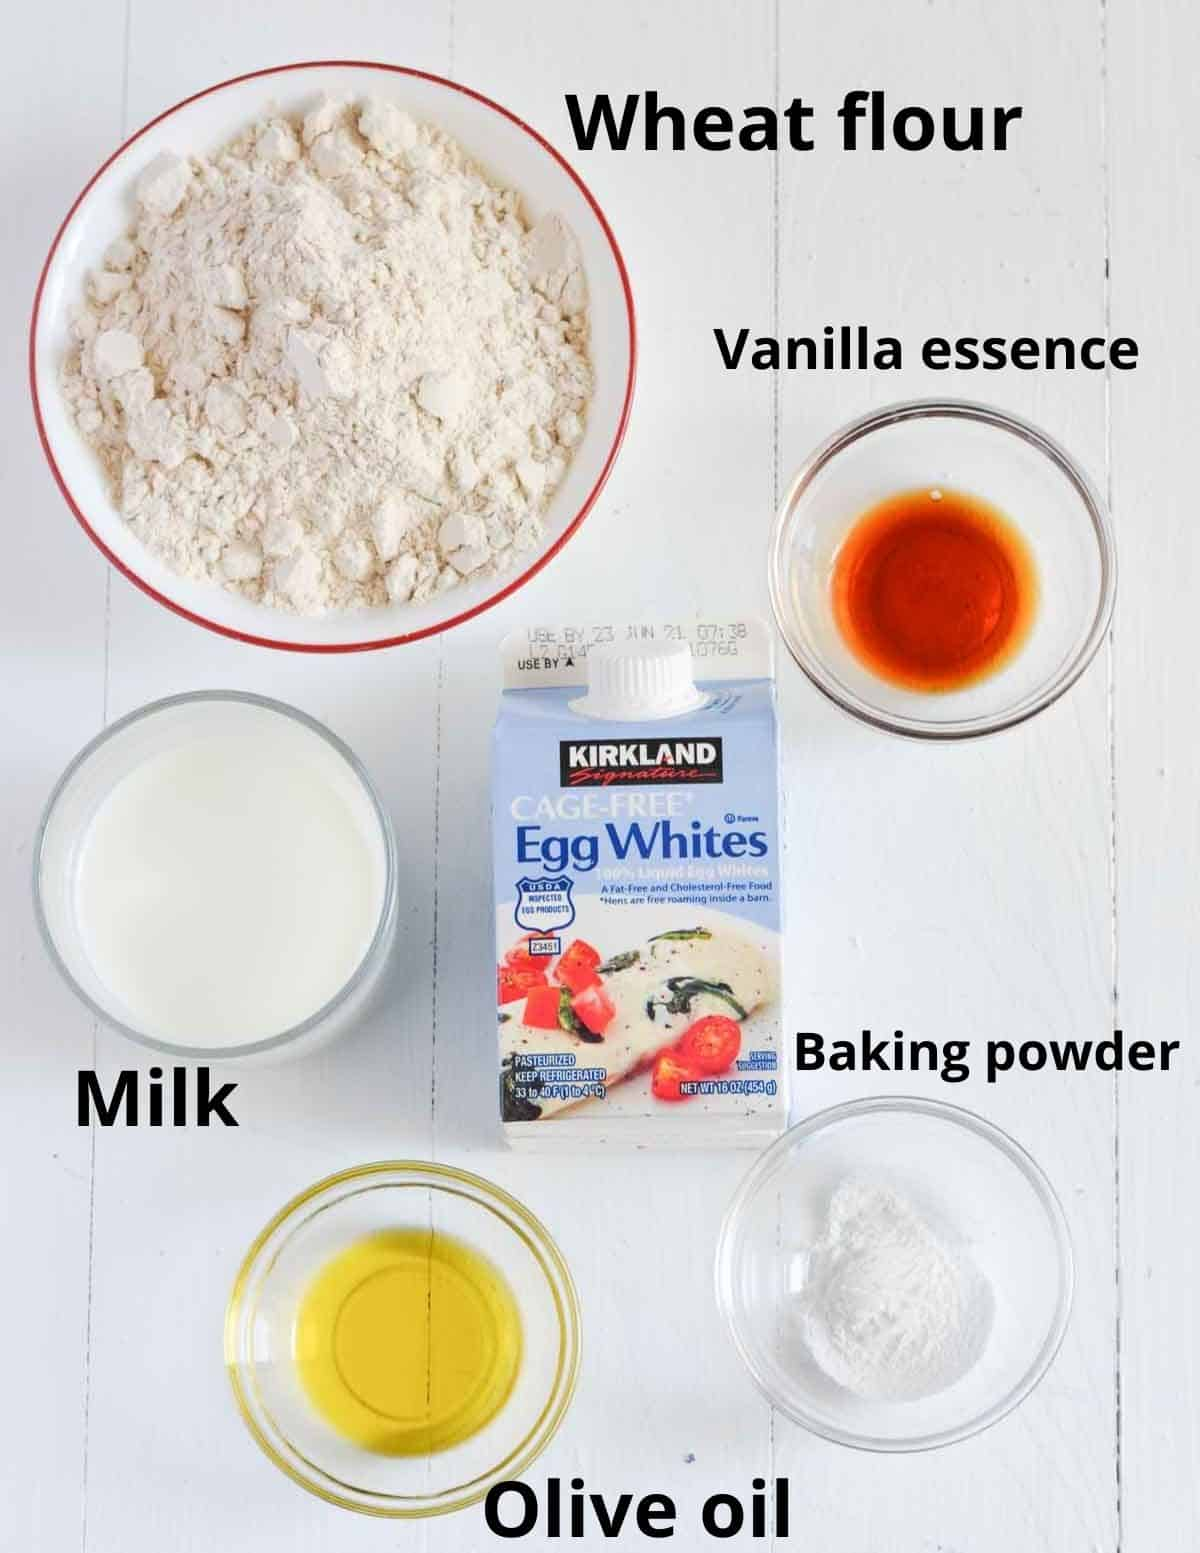 ingredients list to make whole wheat waffles with egg whites